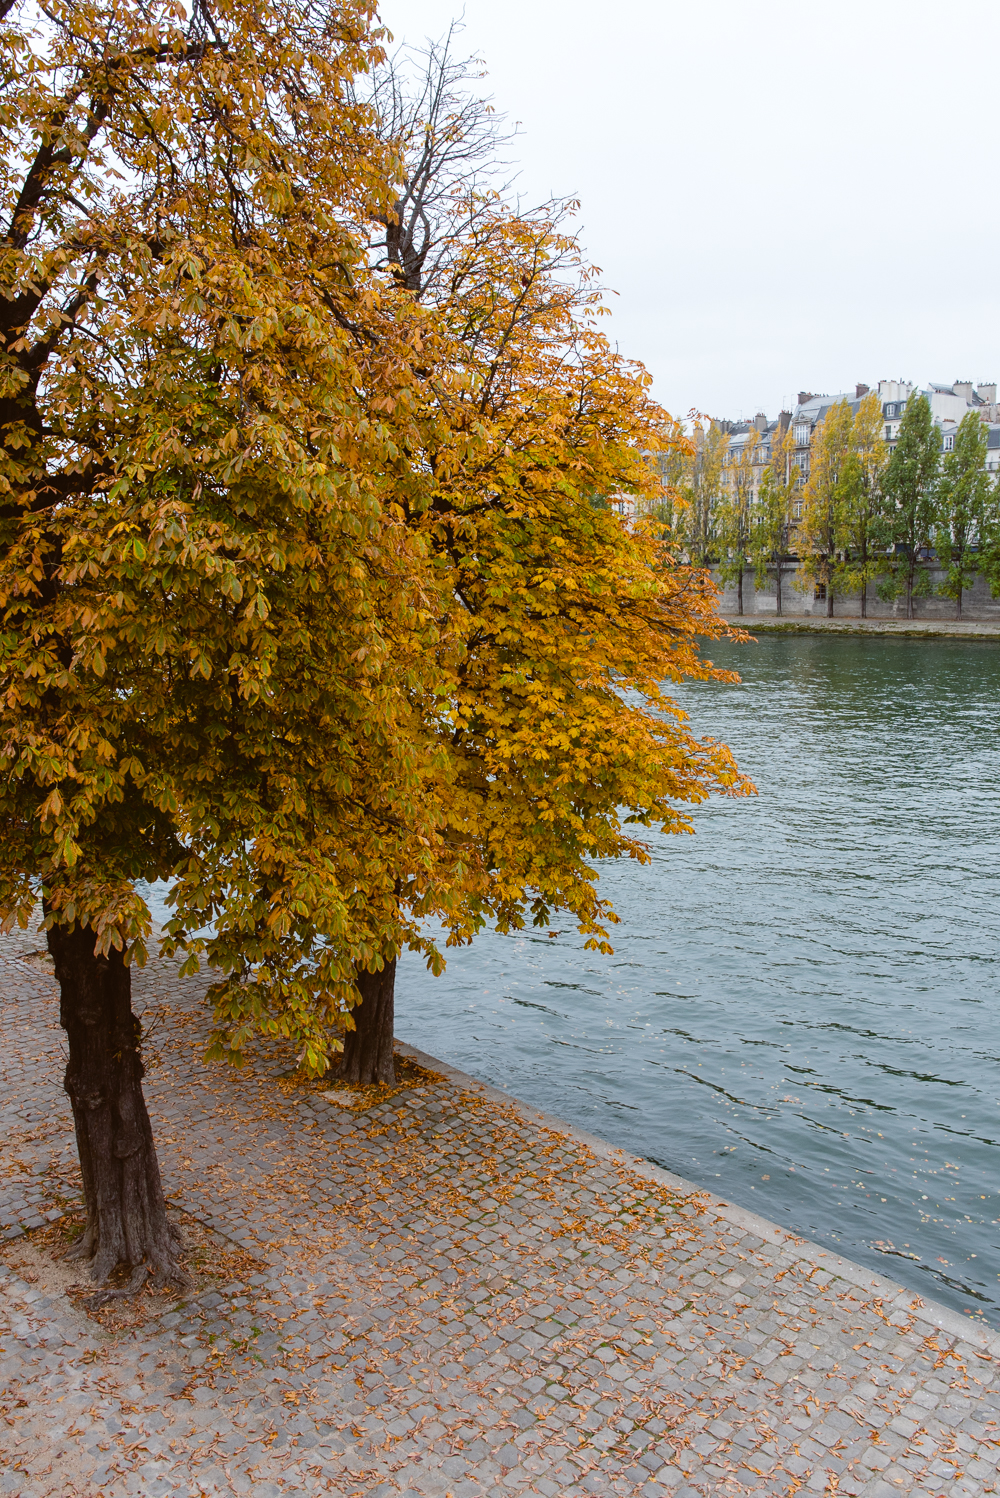 hannah-wilson-autumn-paris-2